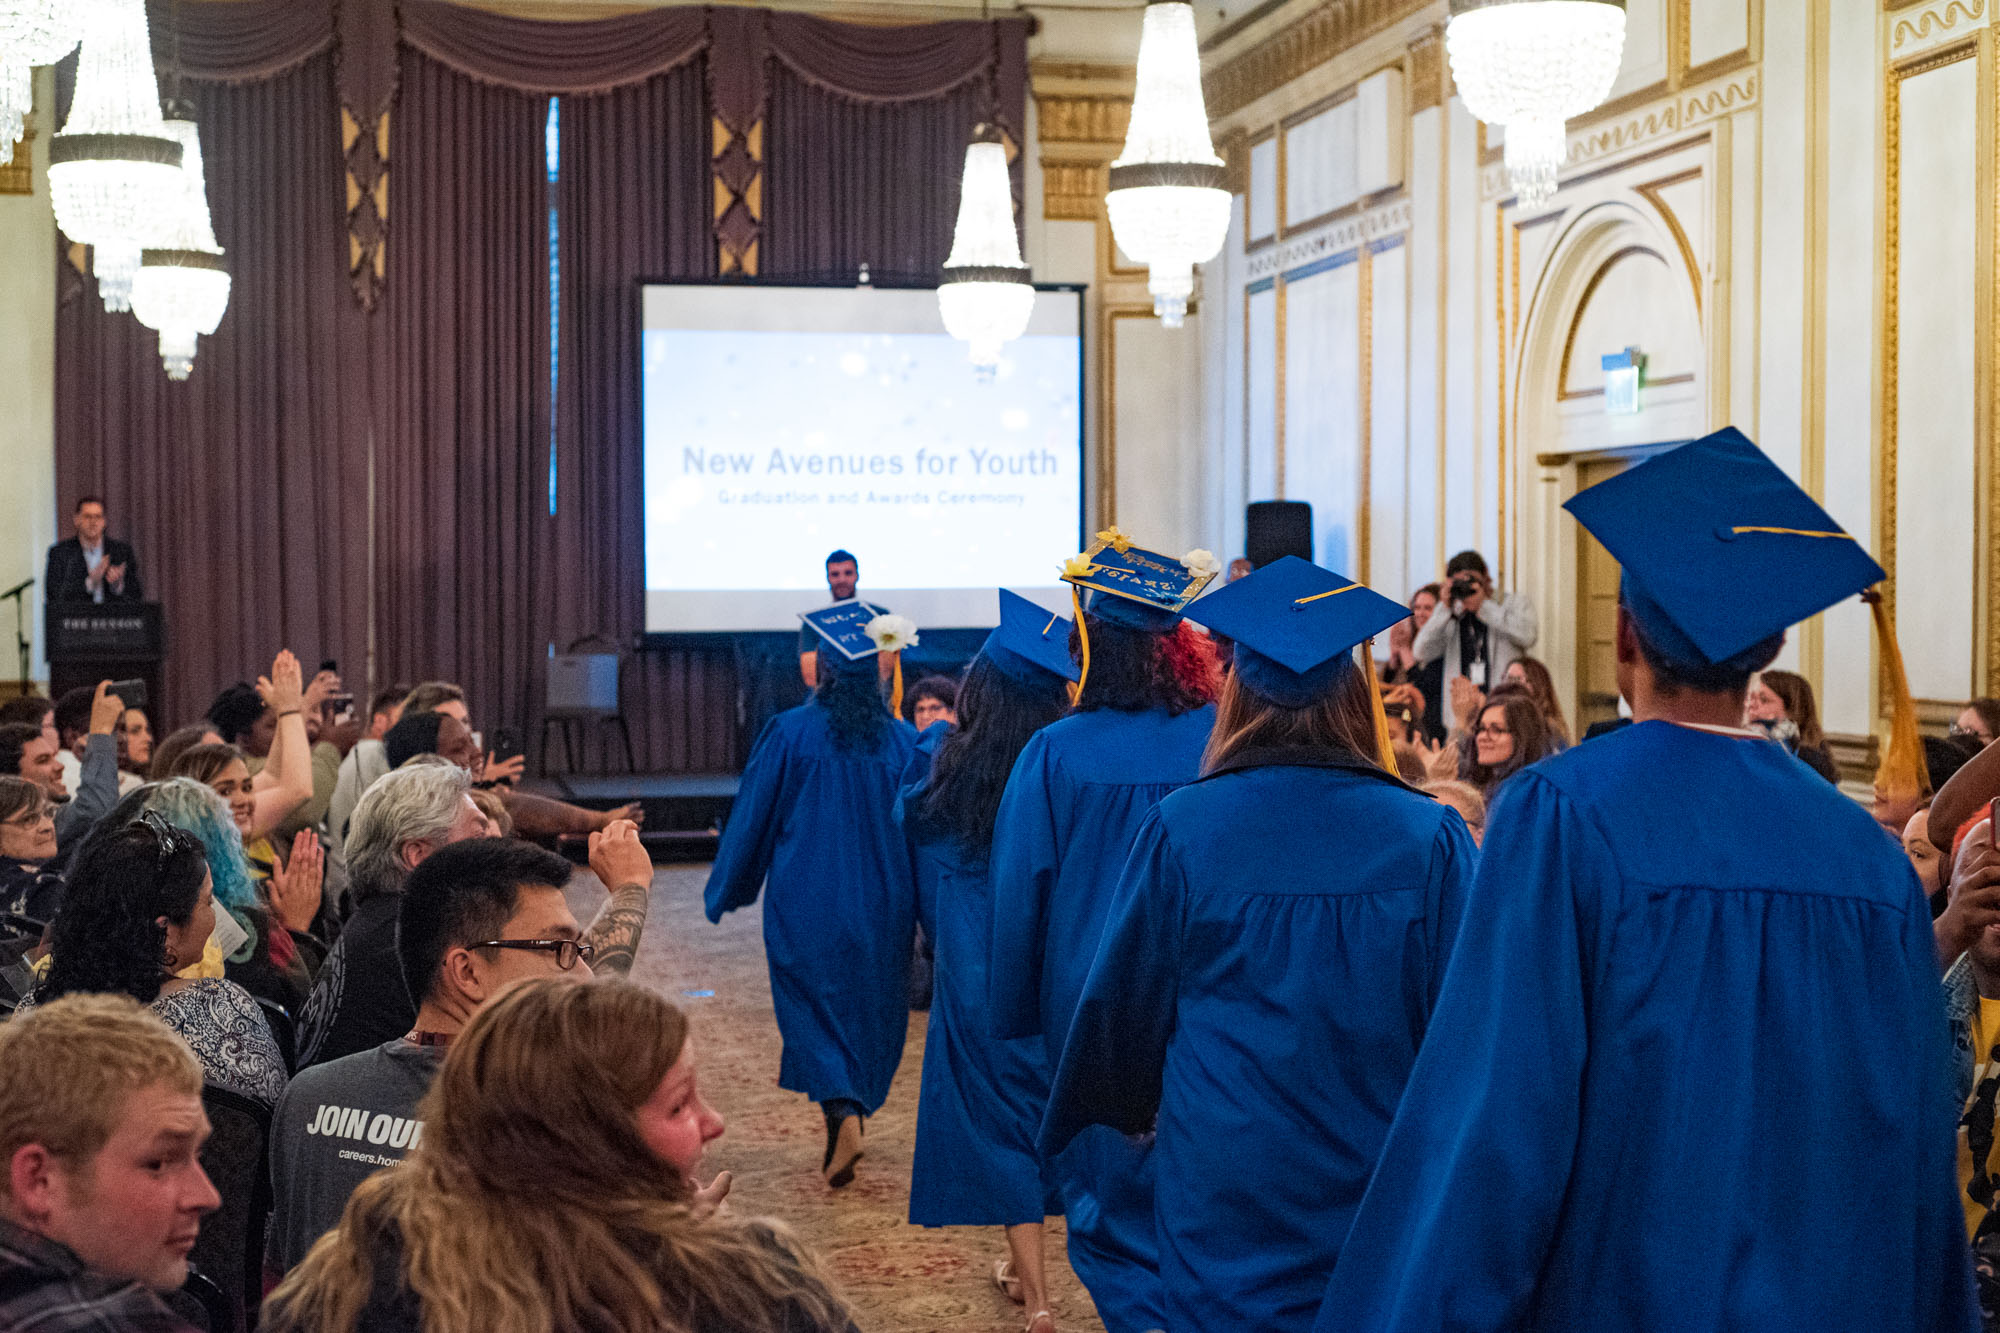 graduates walk down the aisle in their caps and gowns